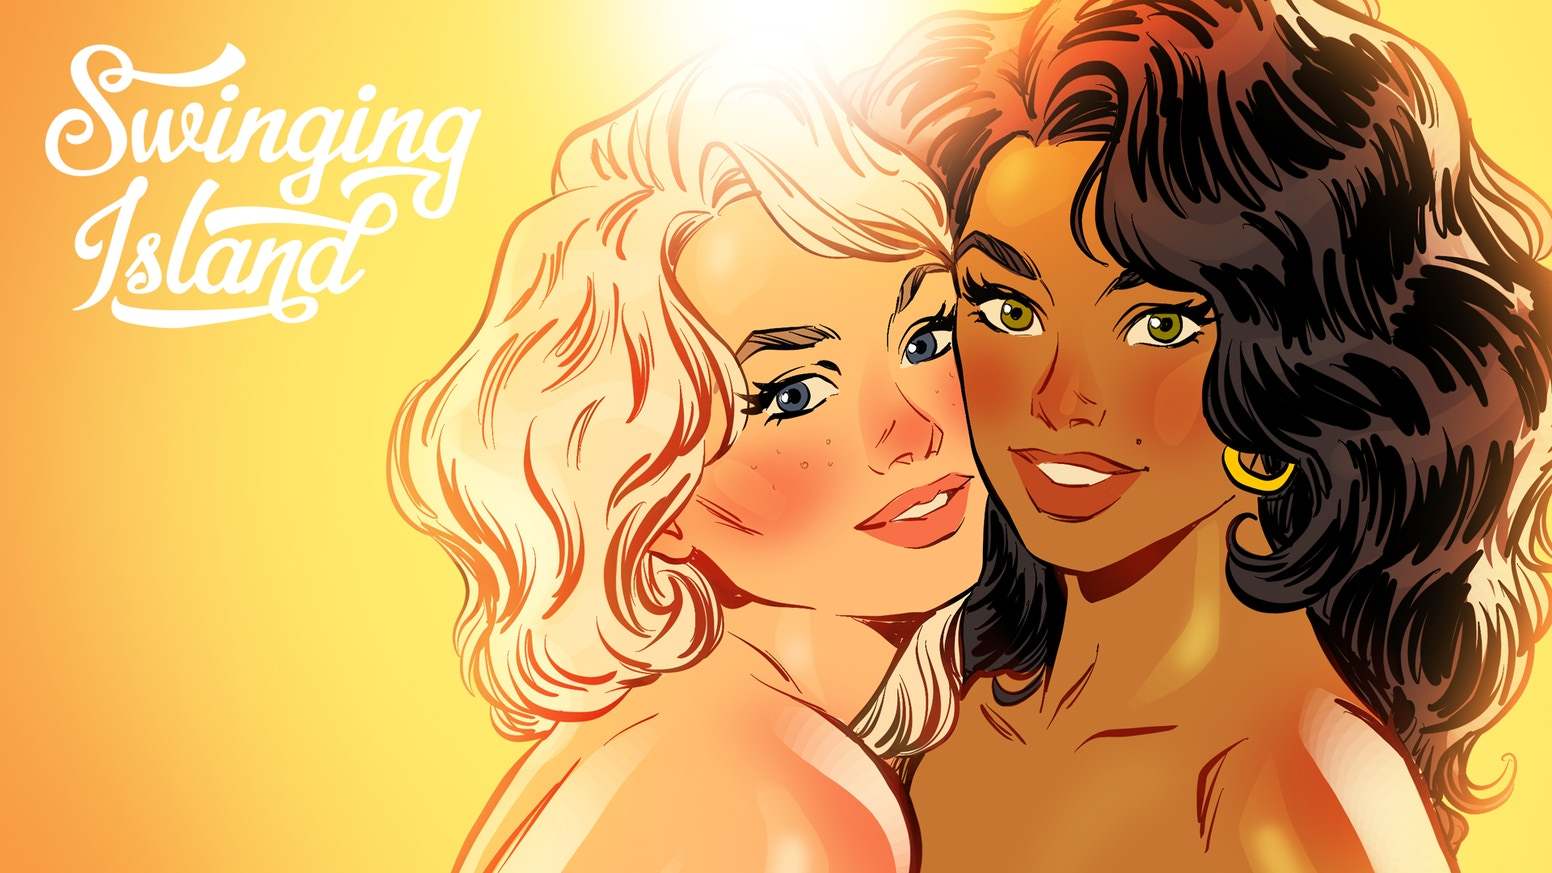 Sex-positive softcover comic book for adults only.